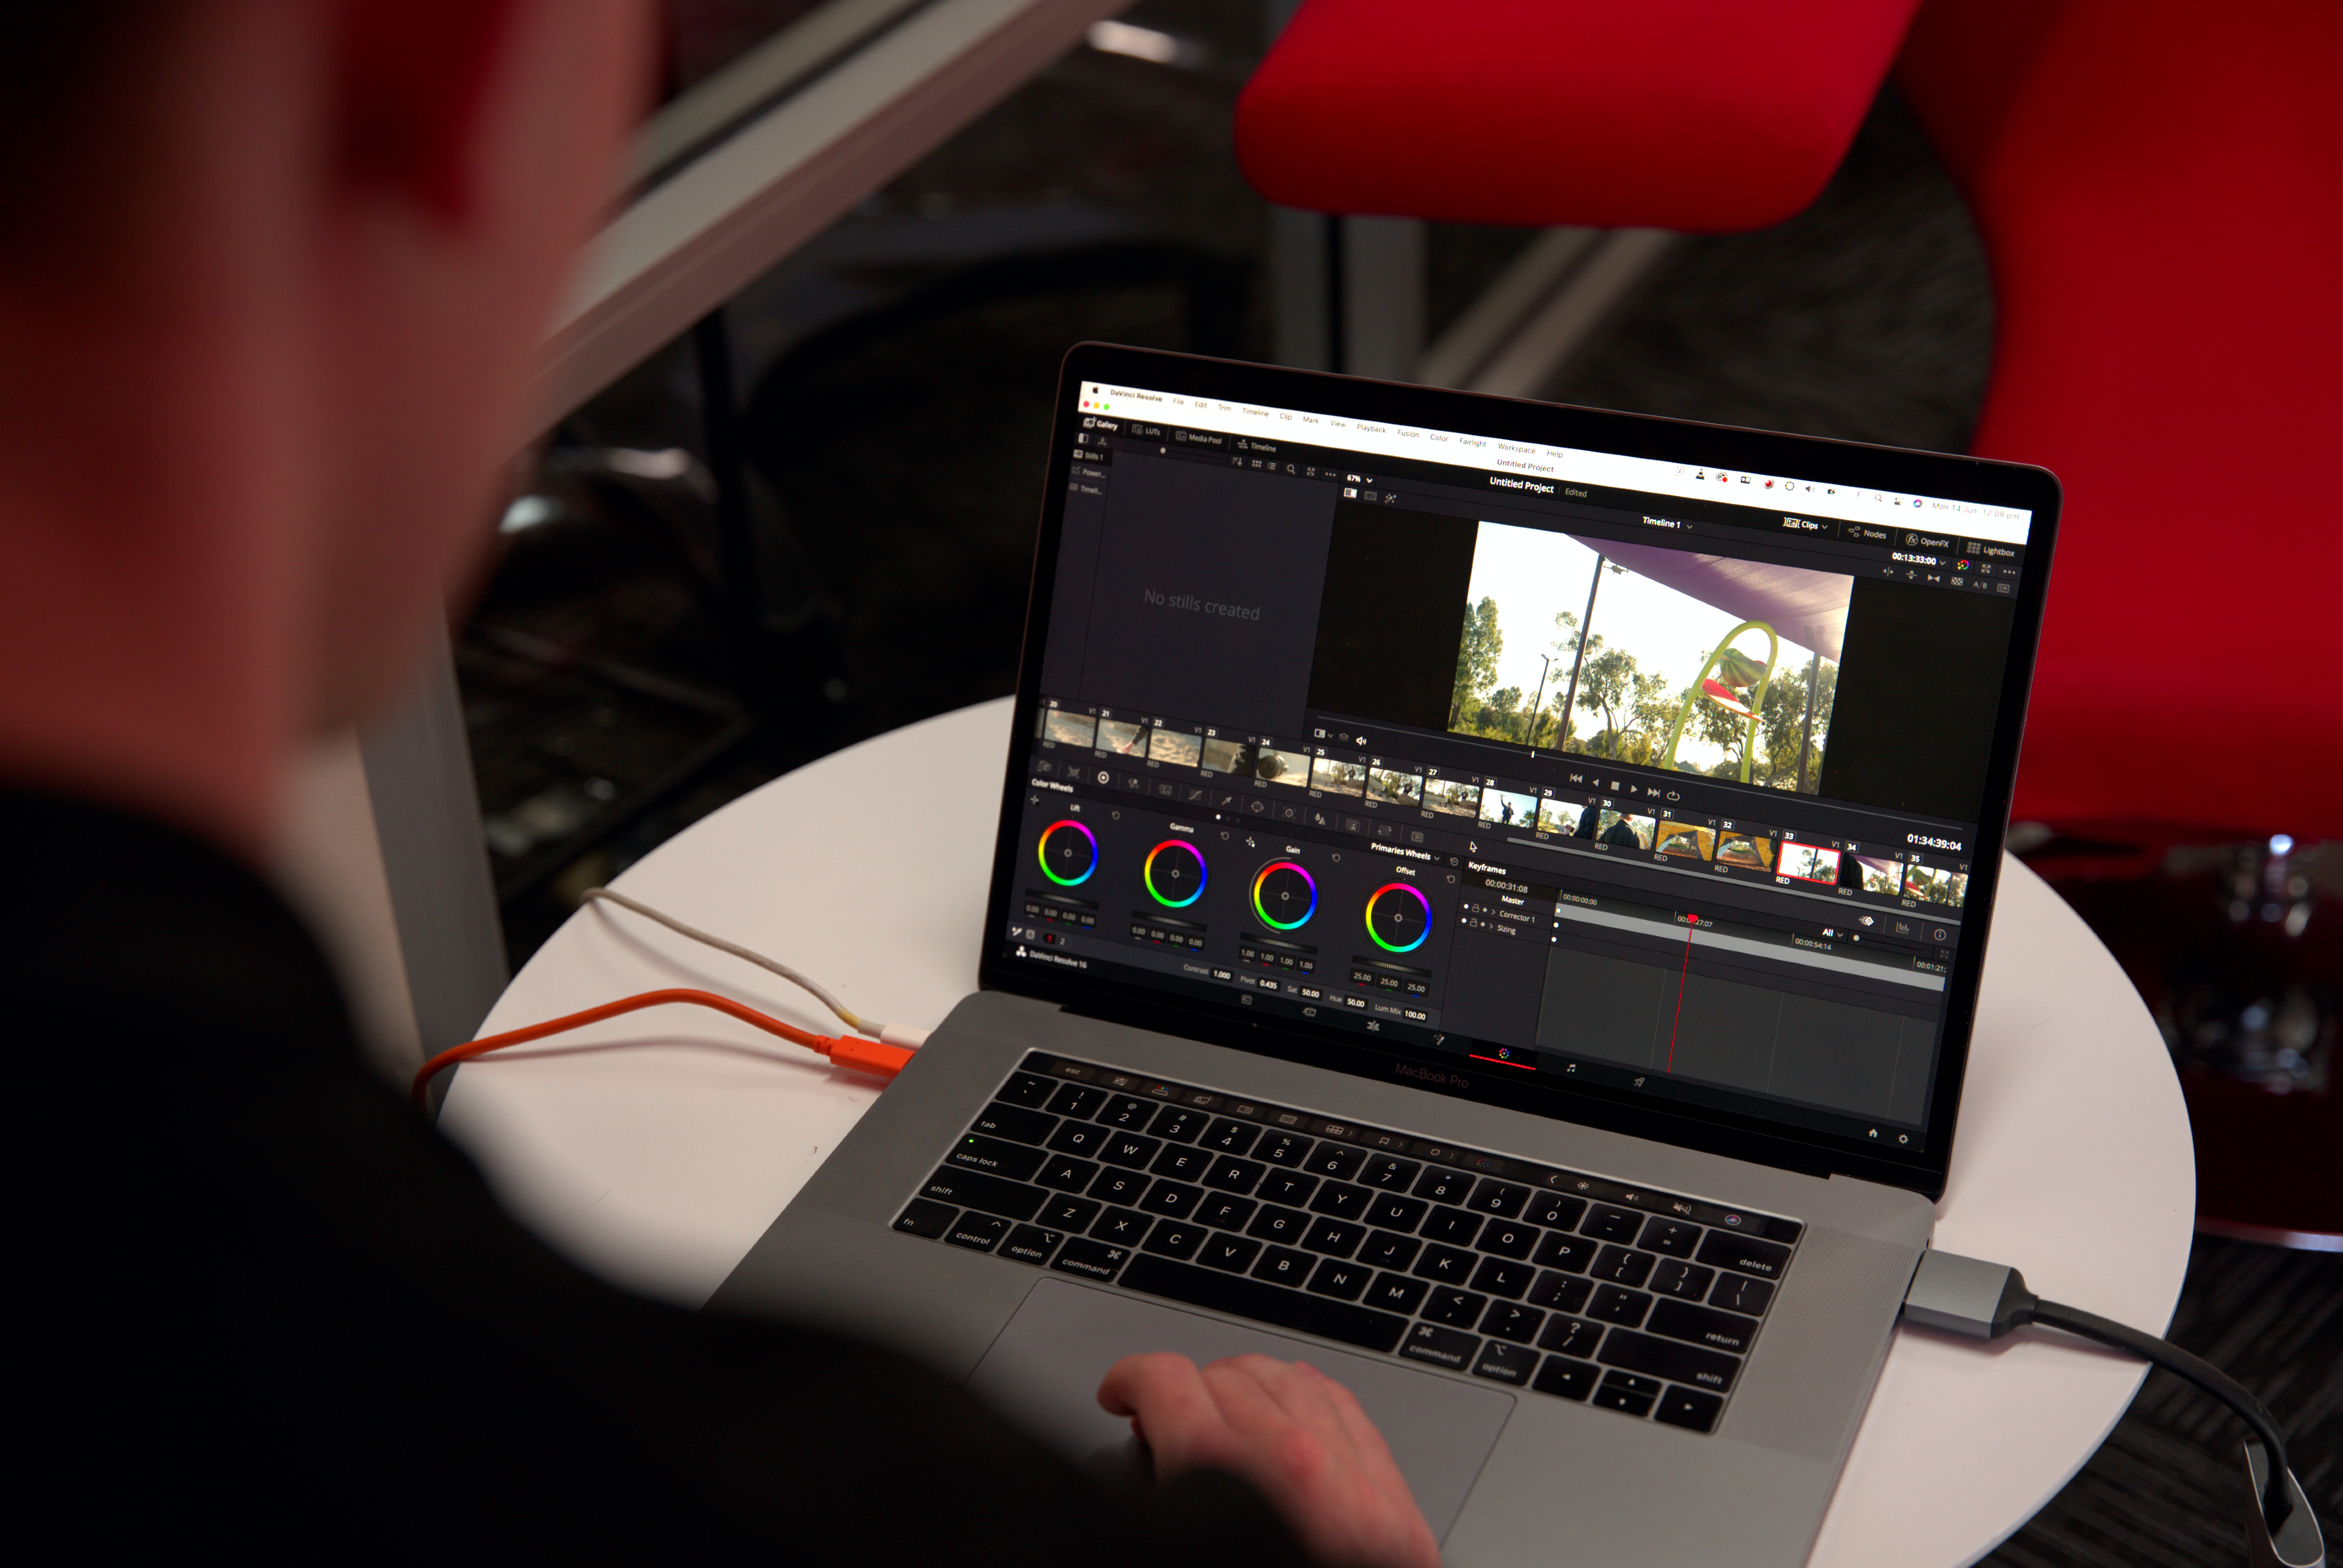 Post production and video editing